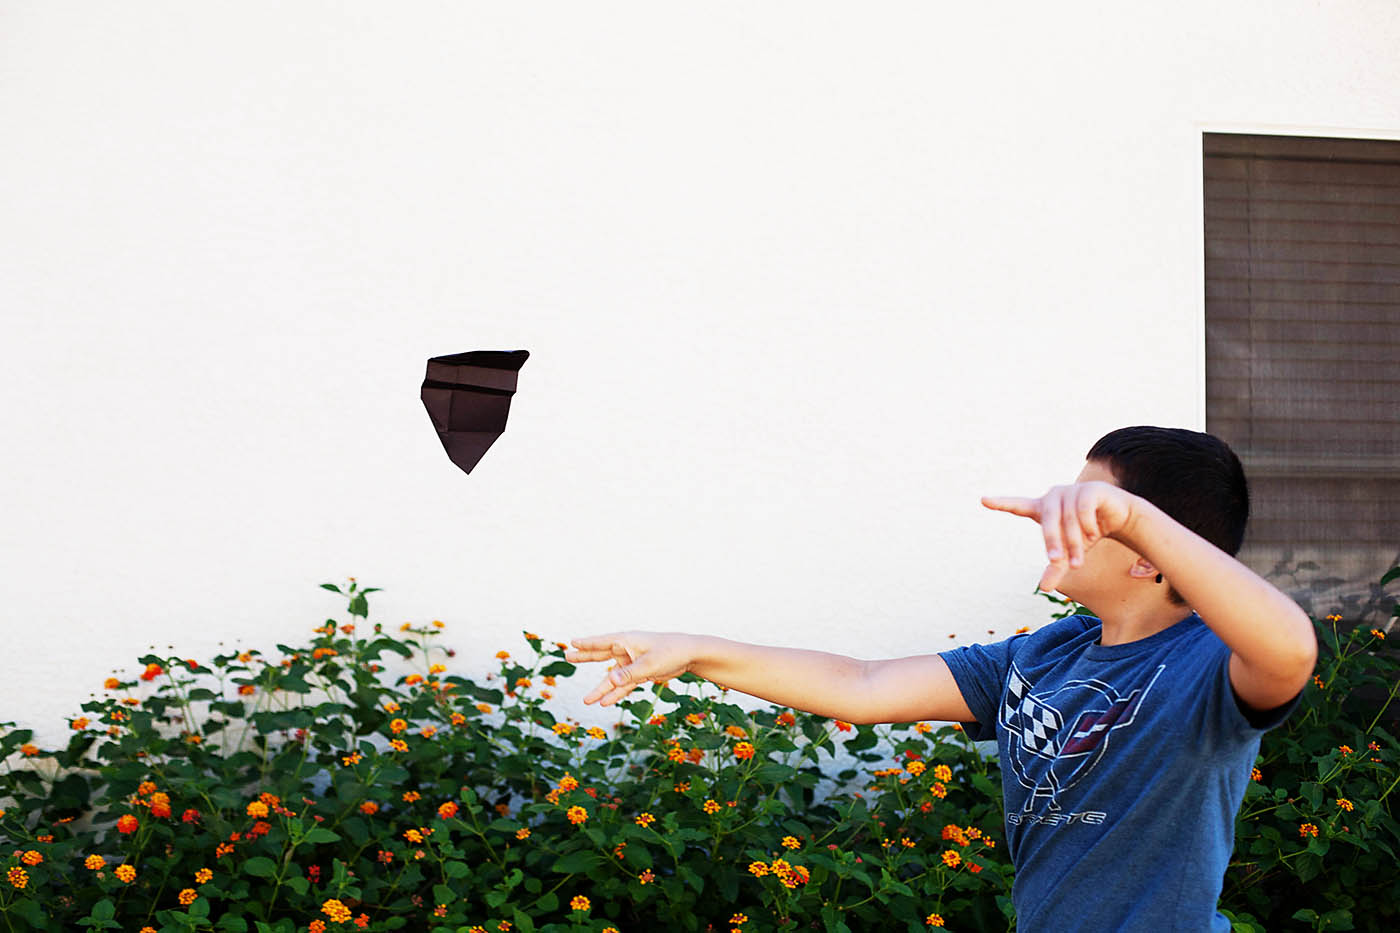 Folded flying bat